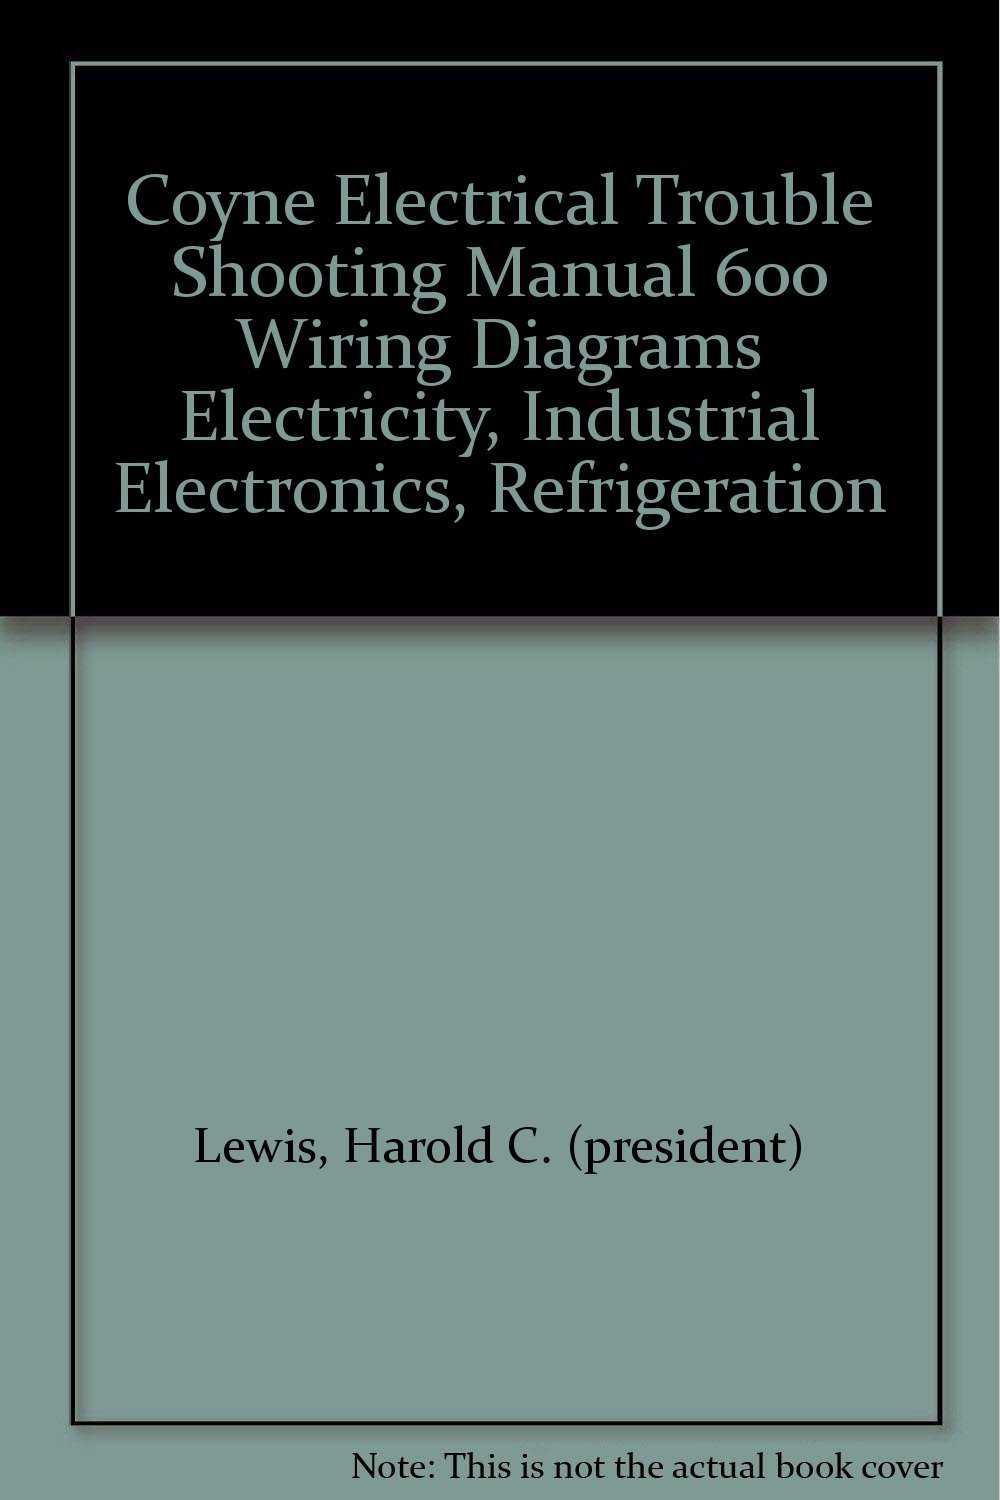 Coyne Electrical Trouble Shooting Manual 600 Wiring Diagrams Diagram Refrigeration Electricity Industrial Electronics Harold C President Lewis